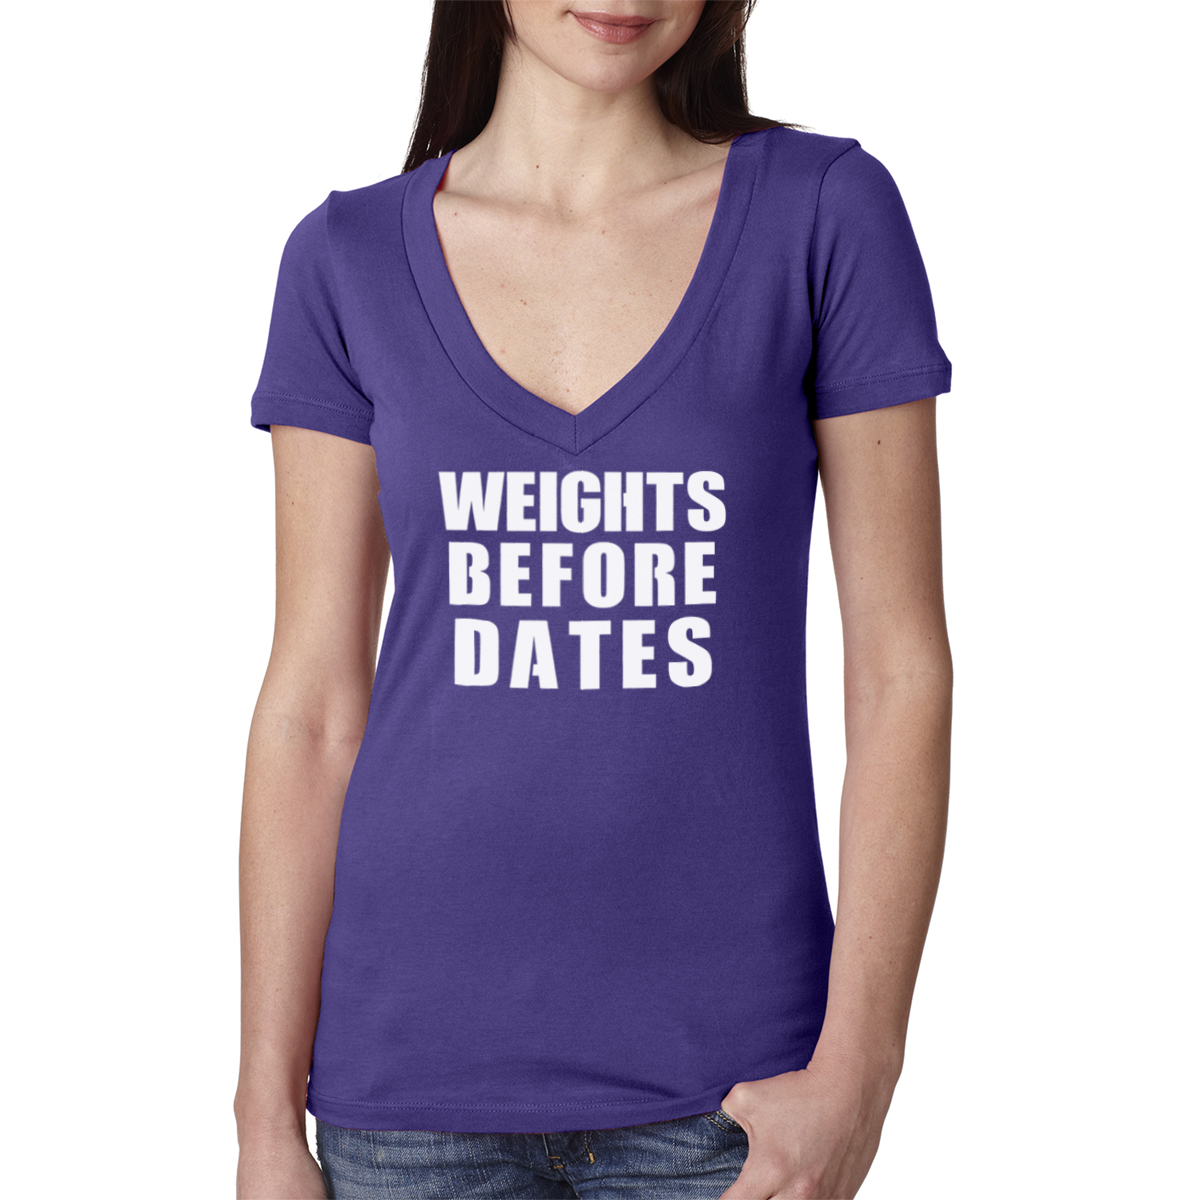 Weights Before Dates Gym Women's Cotton V Neck T-Shirt